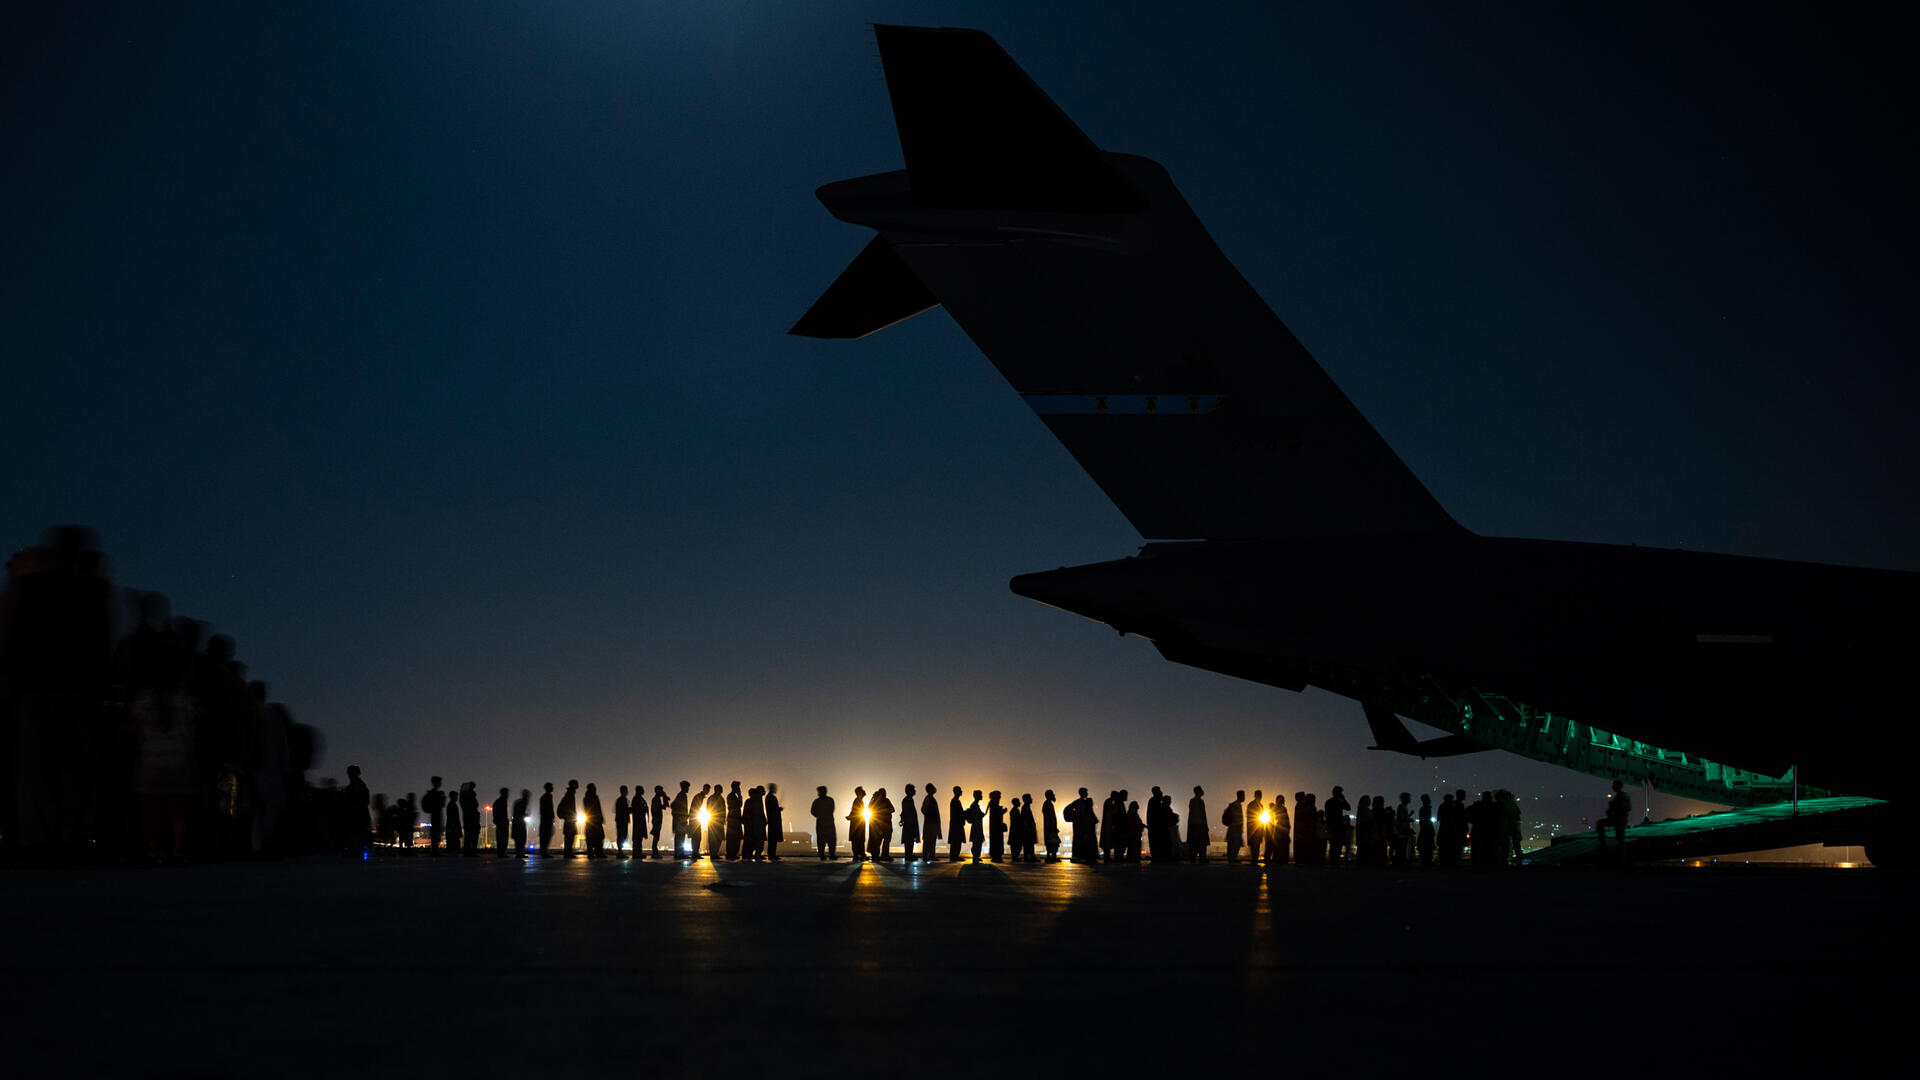 A night shot, with the tail of an airplane in the foreground and a line of people in the background. We can see a light in the distance and just the silhouette of the plane and people.